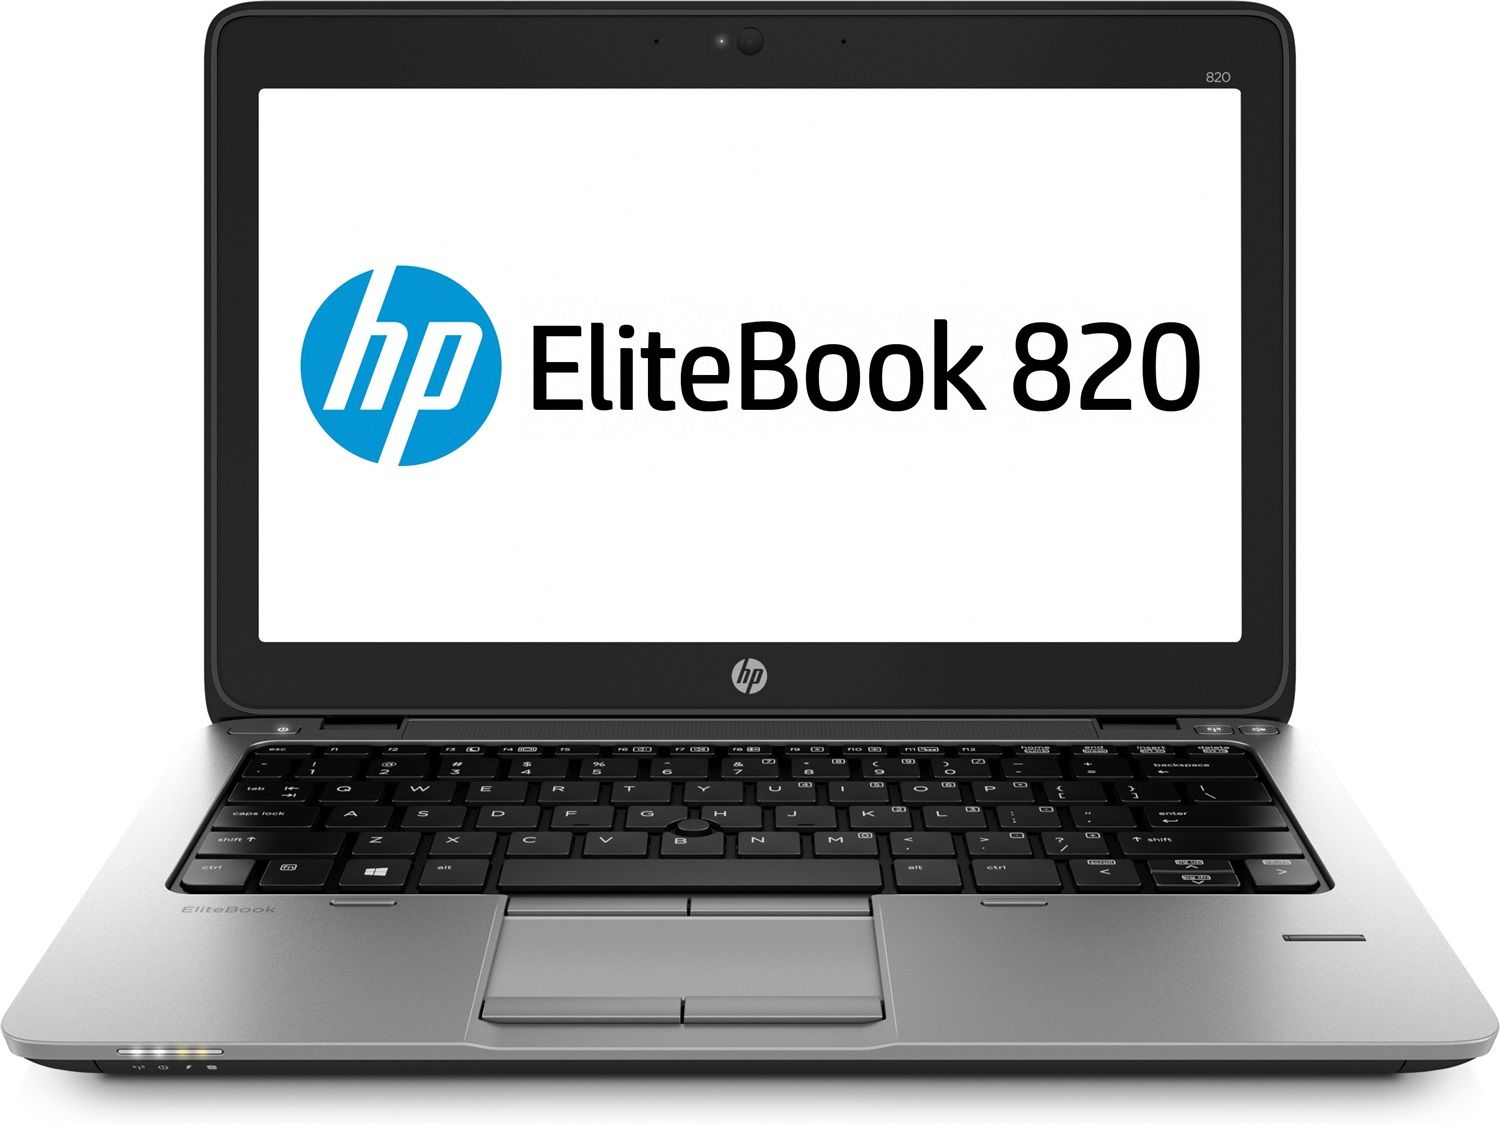 HP EliteBook 820 G1 - F1R80AW